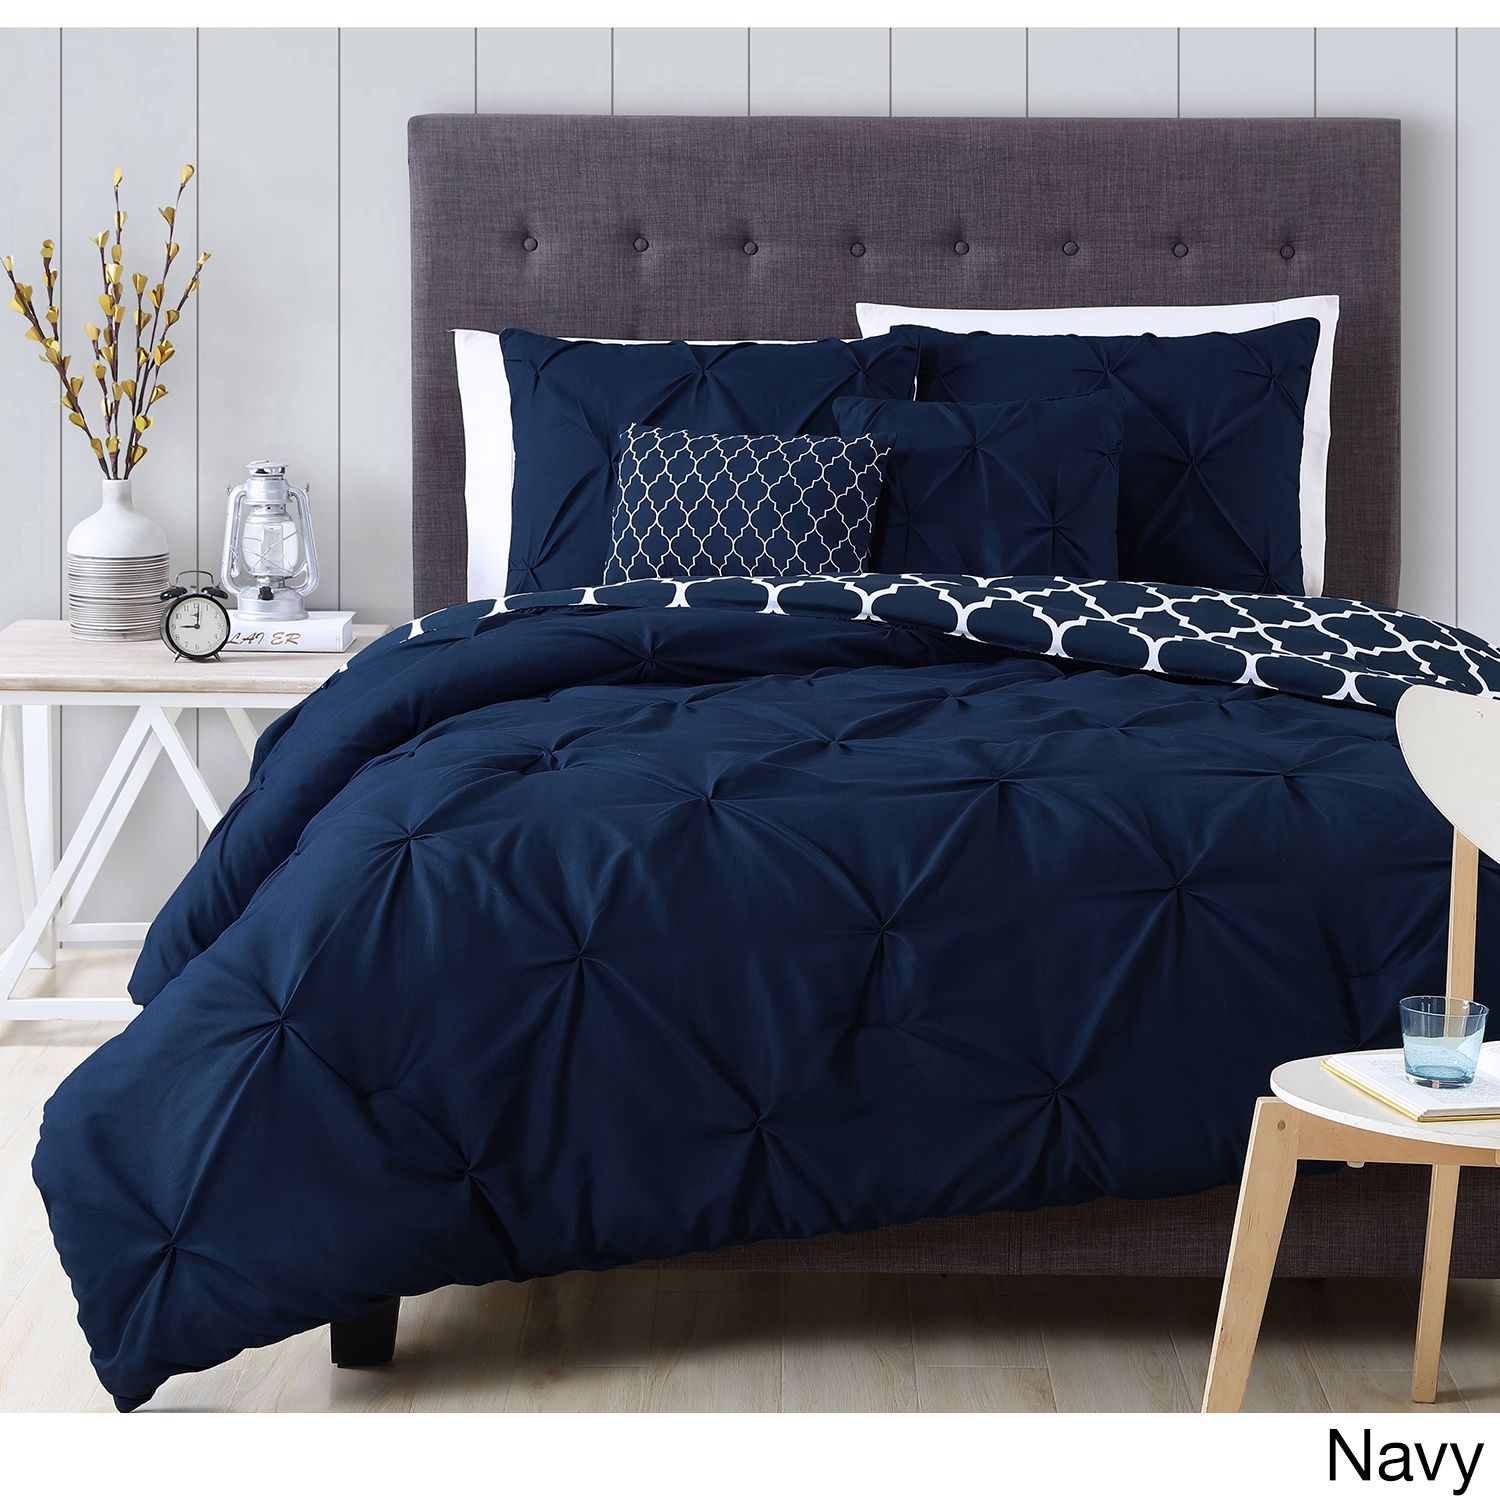 cute royal shocking comforter sheer comforters sets blackout jcpenney collections blue camden curtains curtain bedding luxury navy panel plaza velvet bed pocket picture rod